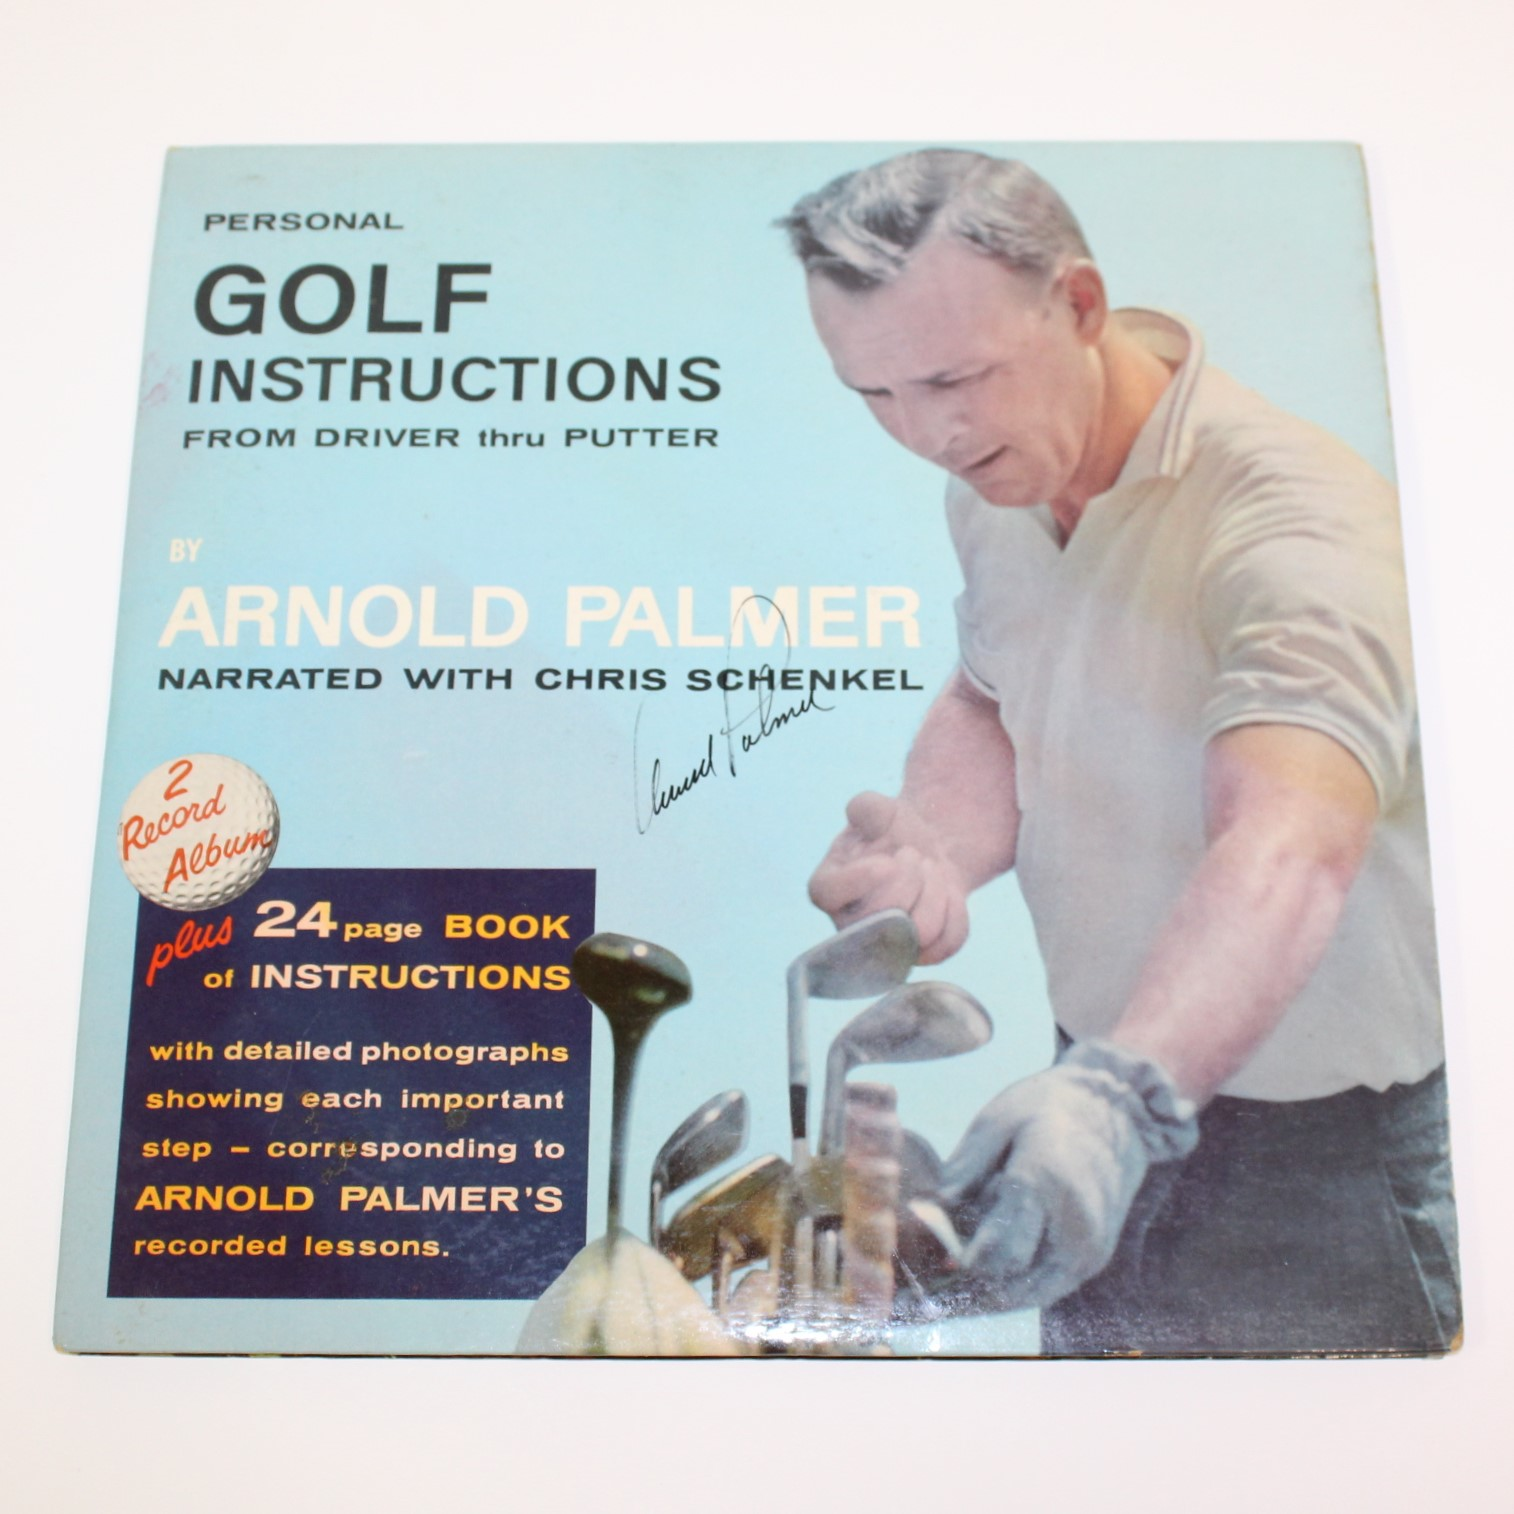 arnold palmer case Arnold palmer pro golfer: helicopter golf swing finish with the possible exception of tiger woods, no one has inspired more people to take up golf than arnold palmer arnie's swing, however, was not necessarily the greatest model  that being the case, he shouldn't have needed to stall the release to save himself from a hook.